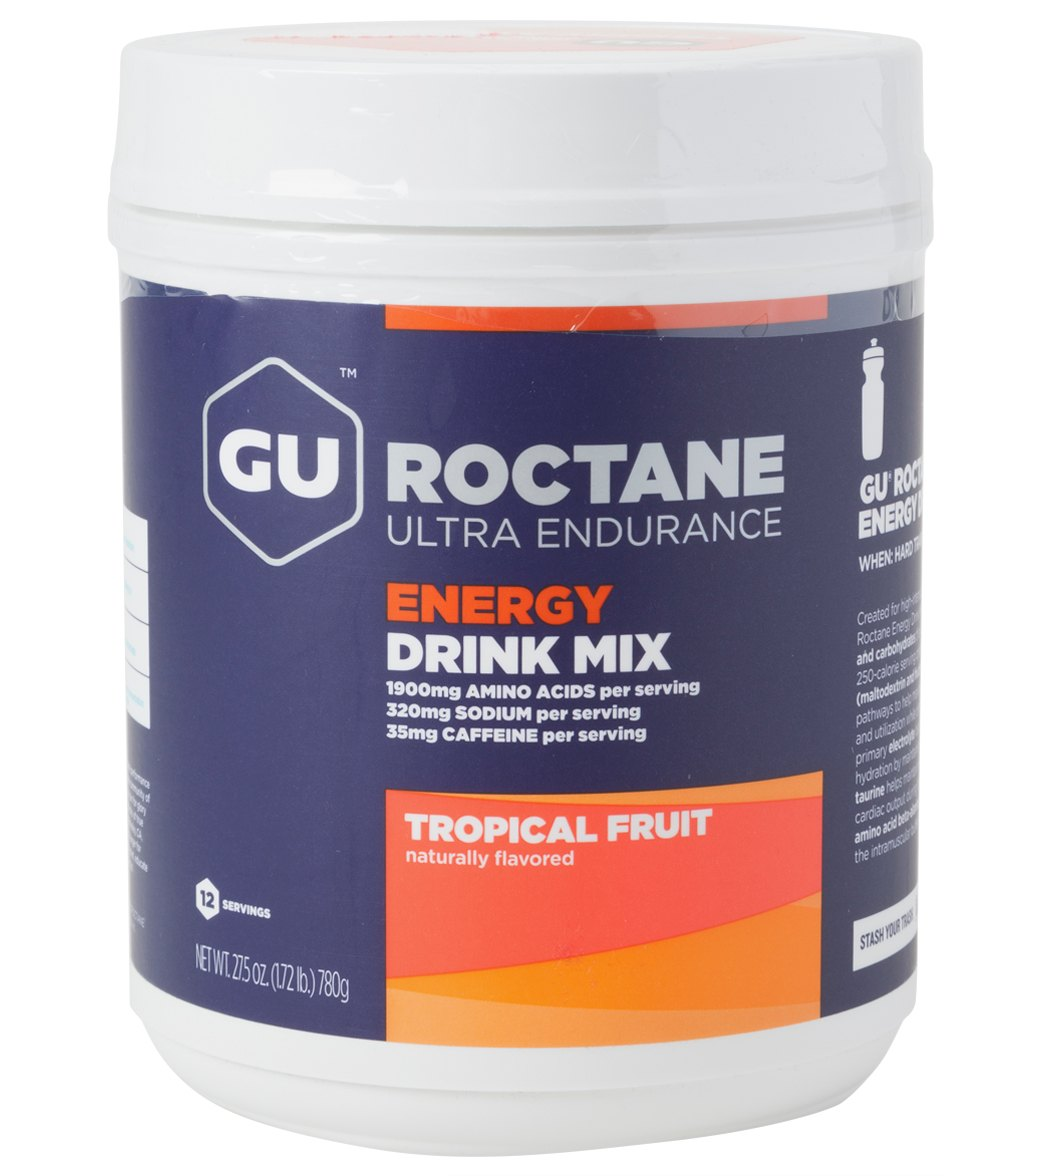 Gu Roctane Energy Drink Mix 12 Serving Canister At